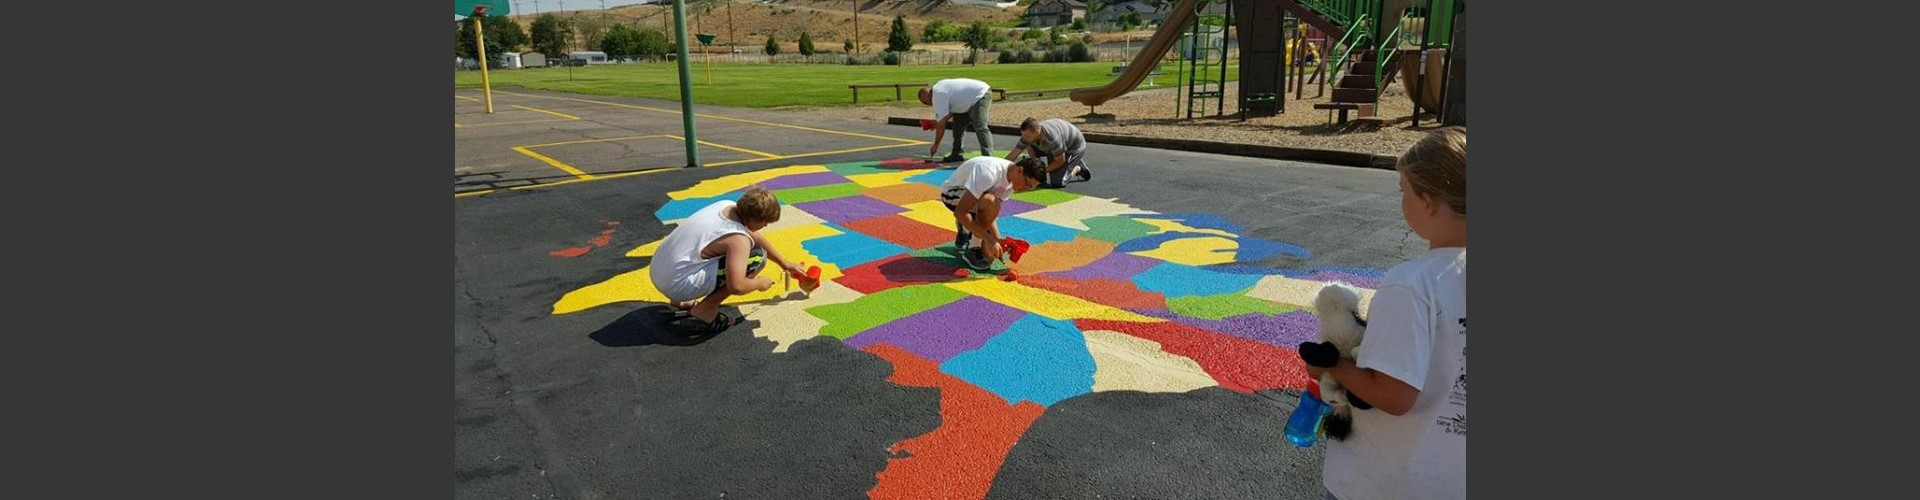 Painted playground map of the United States.